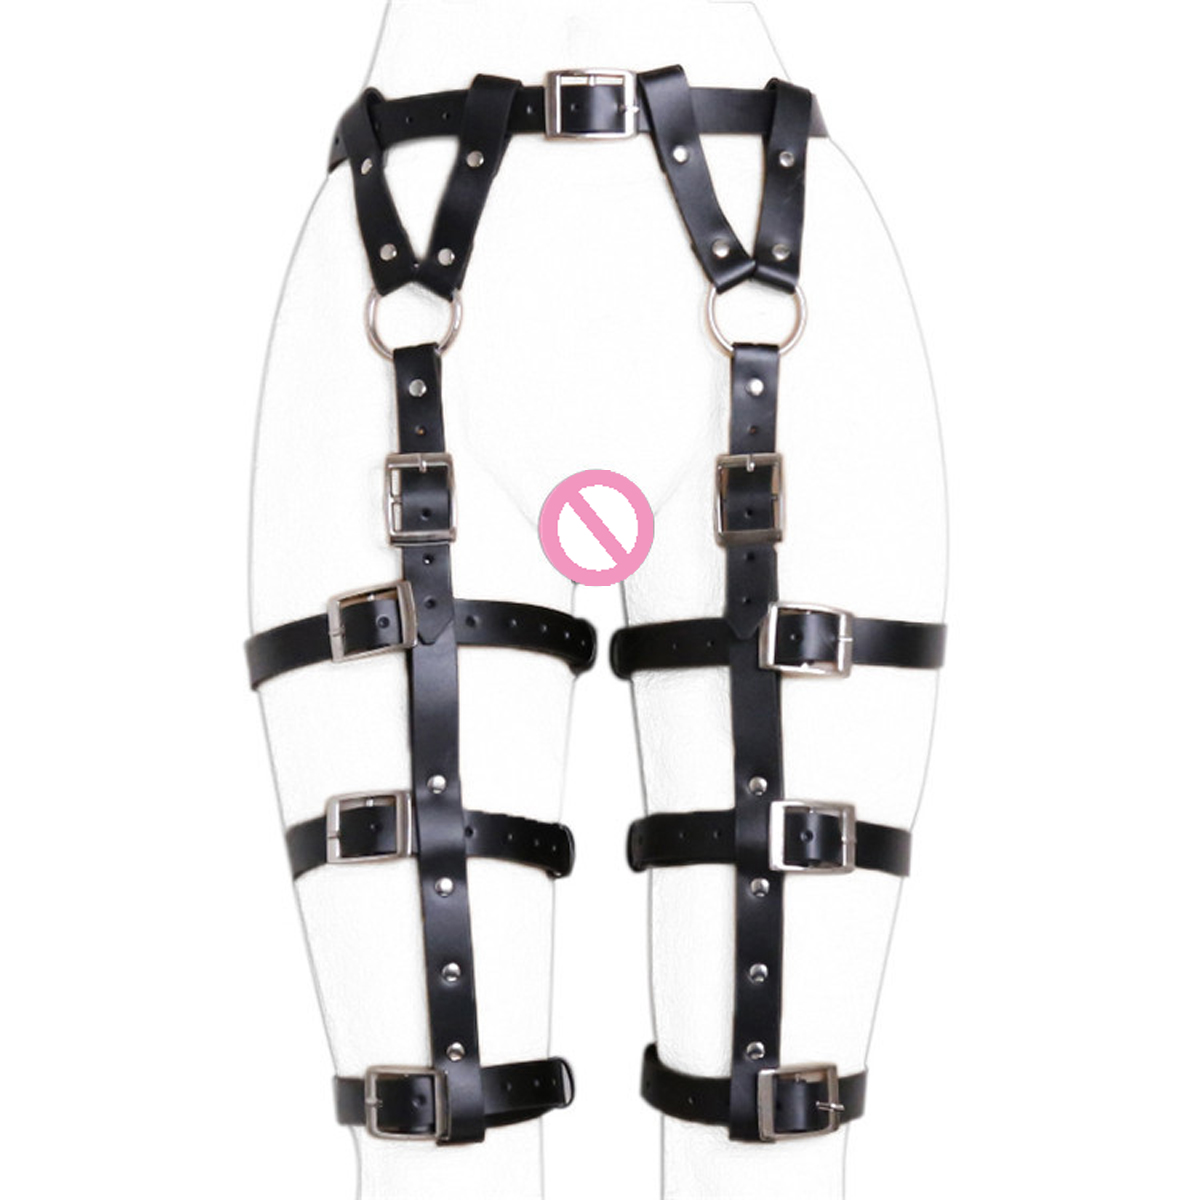 Faux Leather Chastity Belt Underwear Bdsm Restraint Bondage Pants Thong Fetish Sex Toy Adult Sexy Female Flirt Game For Women in Adult Games from Beauty Health